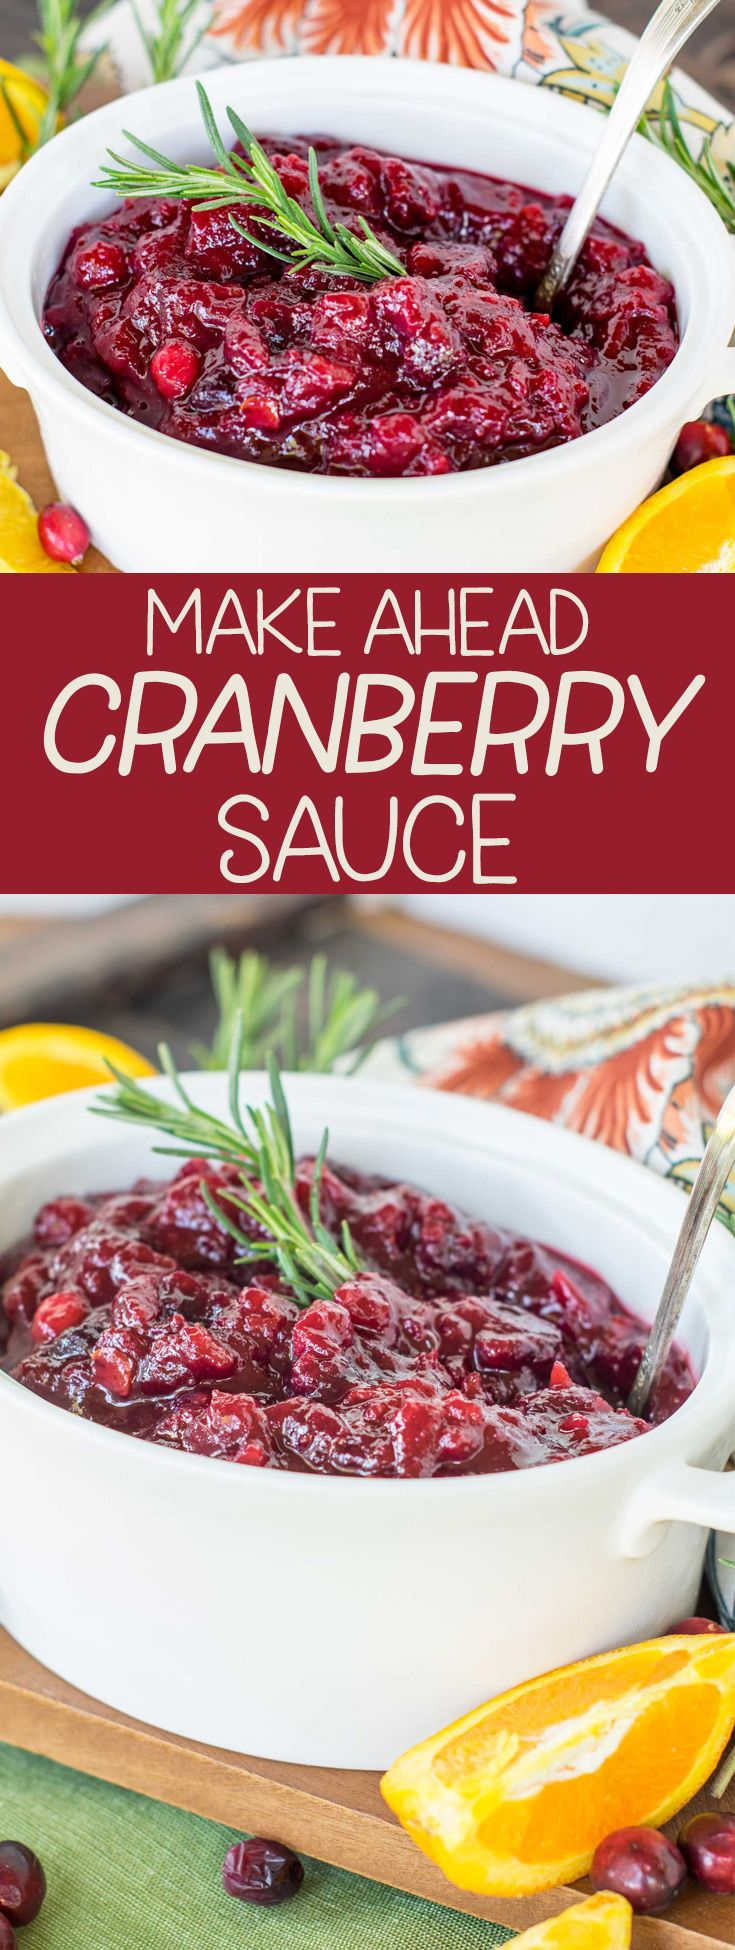 This EFFORTLESS Make Ahead Homemade Cranberry Sauce